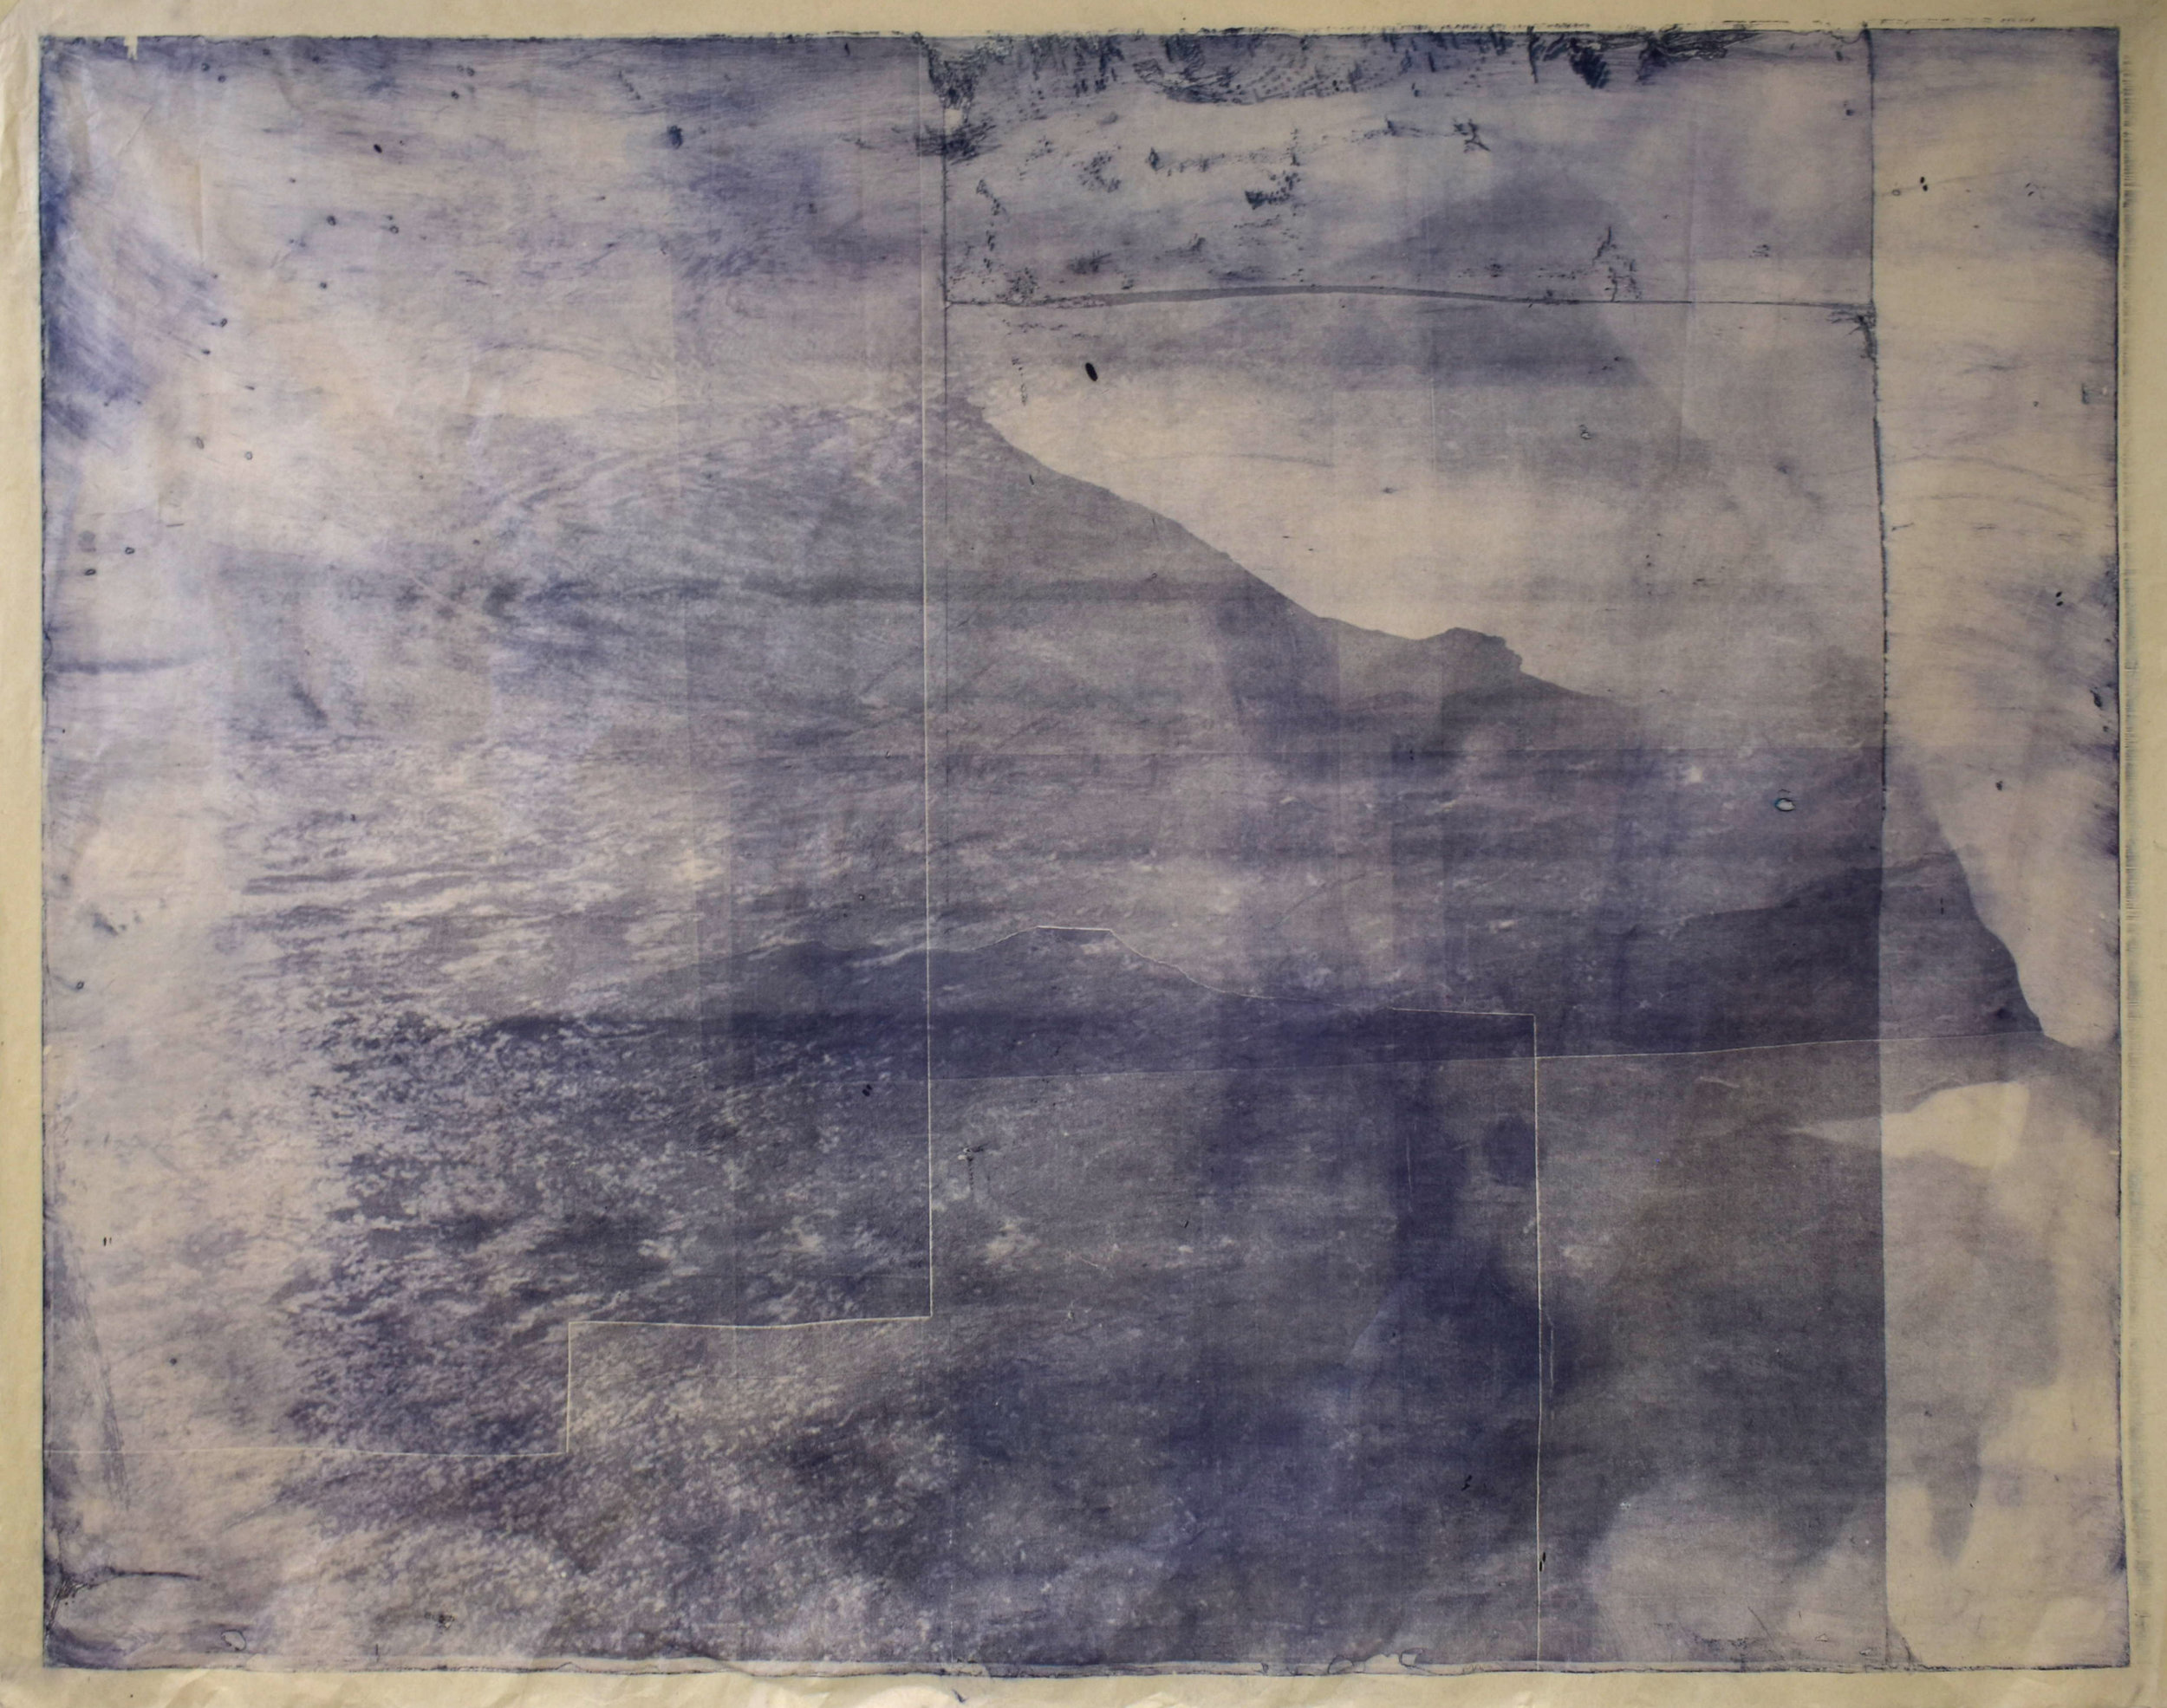 Over and Under (Whirlpool),  No. 7, 2019. Series of 9 photopolymer prints (from Prussian blue to orange oxide) printed on semi-transparent Thai paper. 137 x 109cm.. Superposition of 2 photographs taken by the artist: fumerole pits in Námafjall, Iceland and a whirlpool off the Cap Fréhel, France.